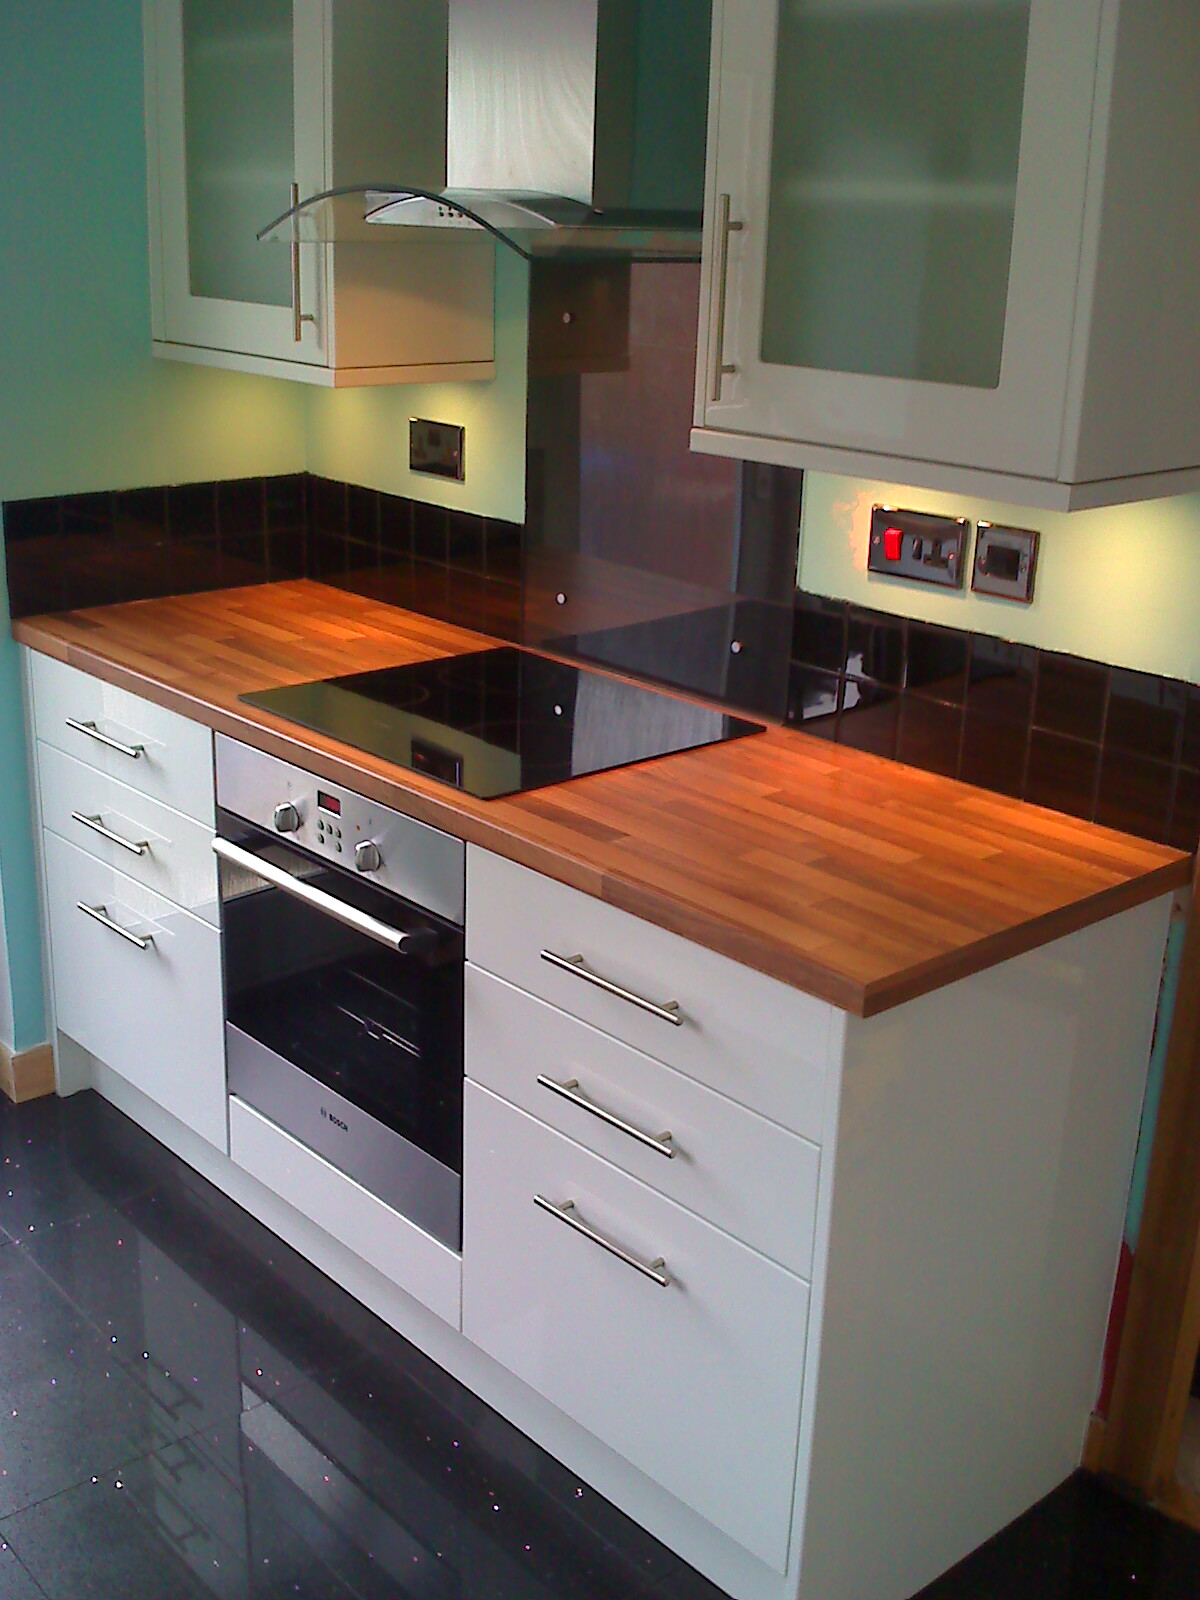 Excellent Howdens Kitchens Glendevon gloss white pic 6 1200 x 1600 · 336 kB · jpeg